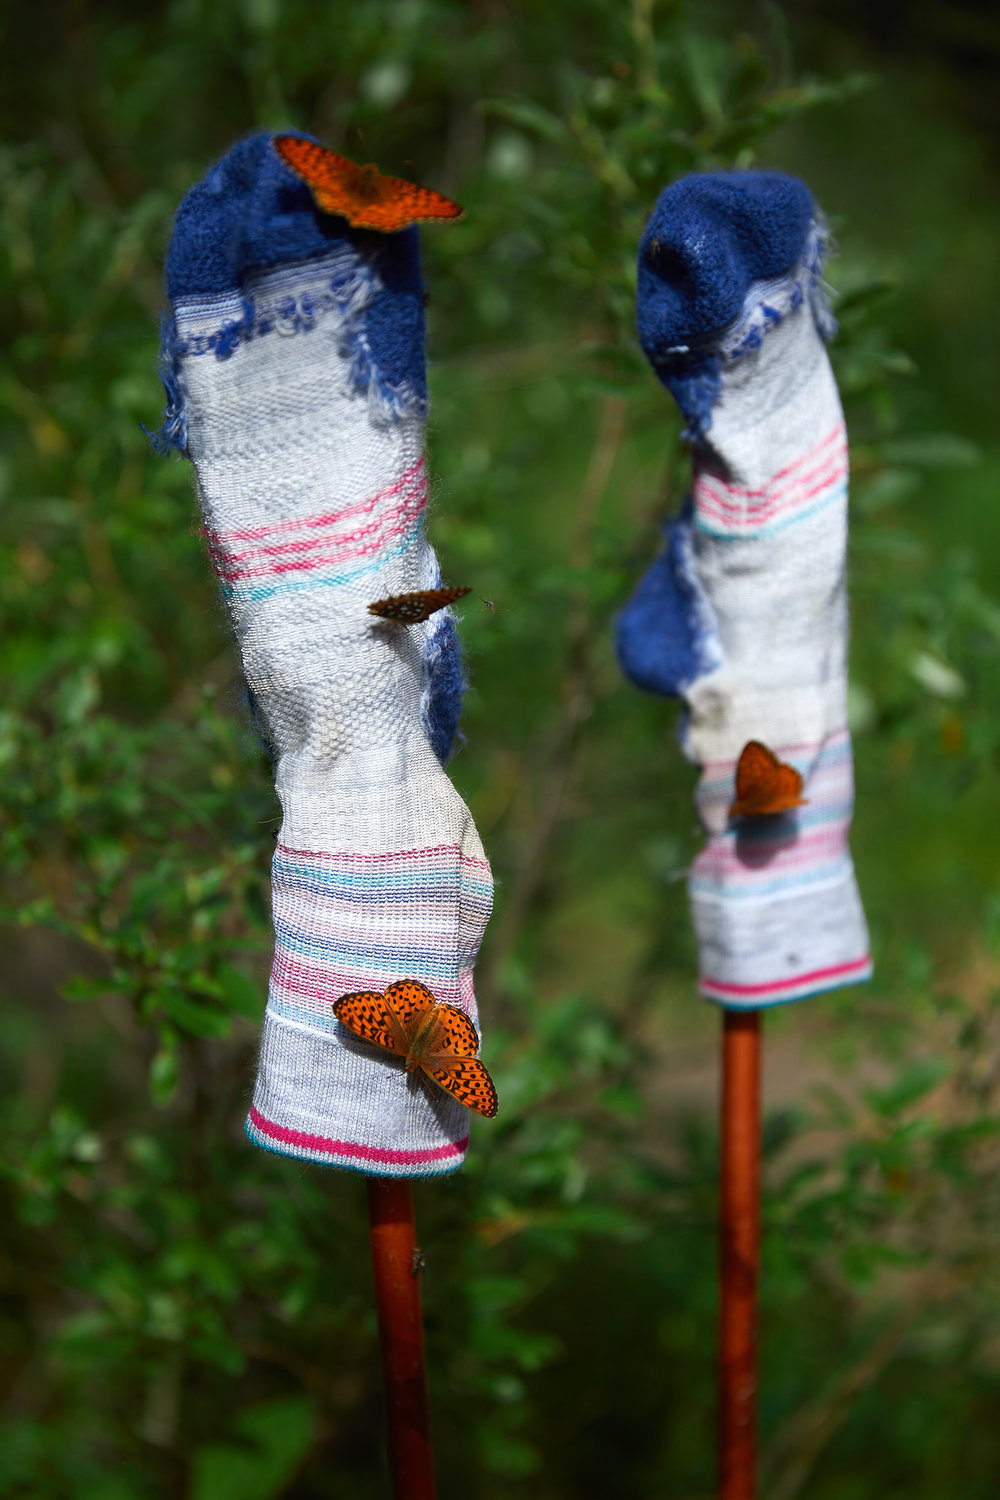 There were tons of butterflies at Porcupine Campground, Paige had setup her socks to dry and they were covered in just a few minutes.